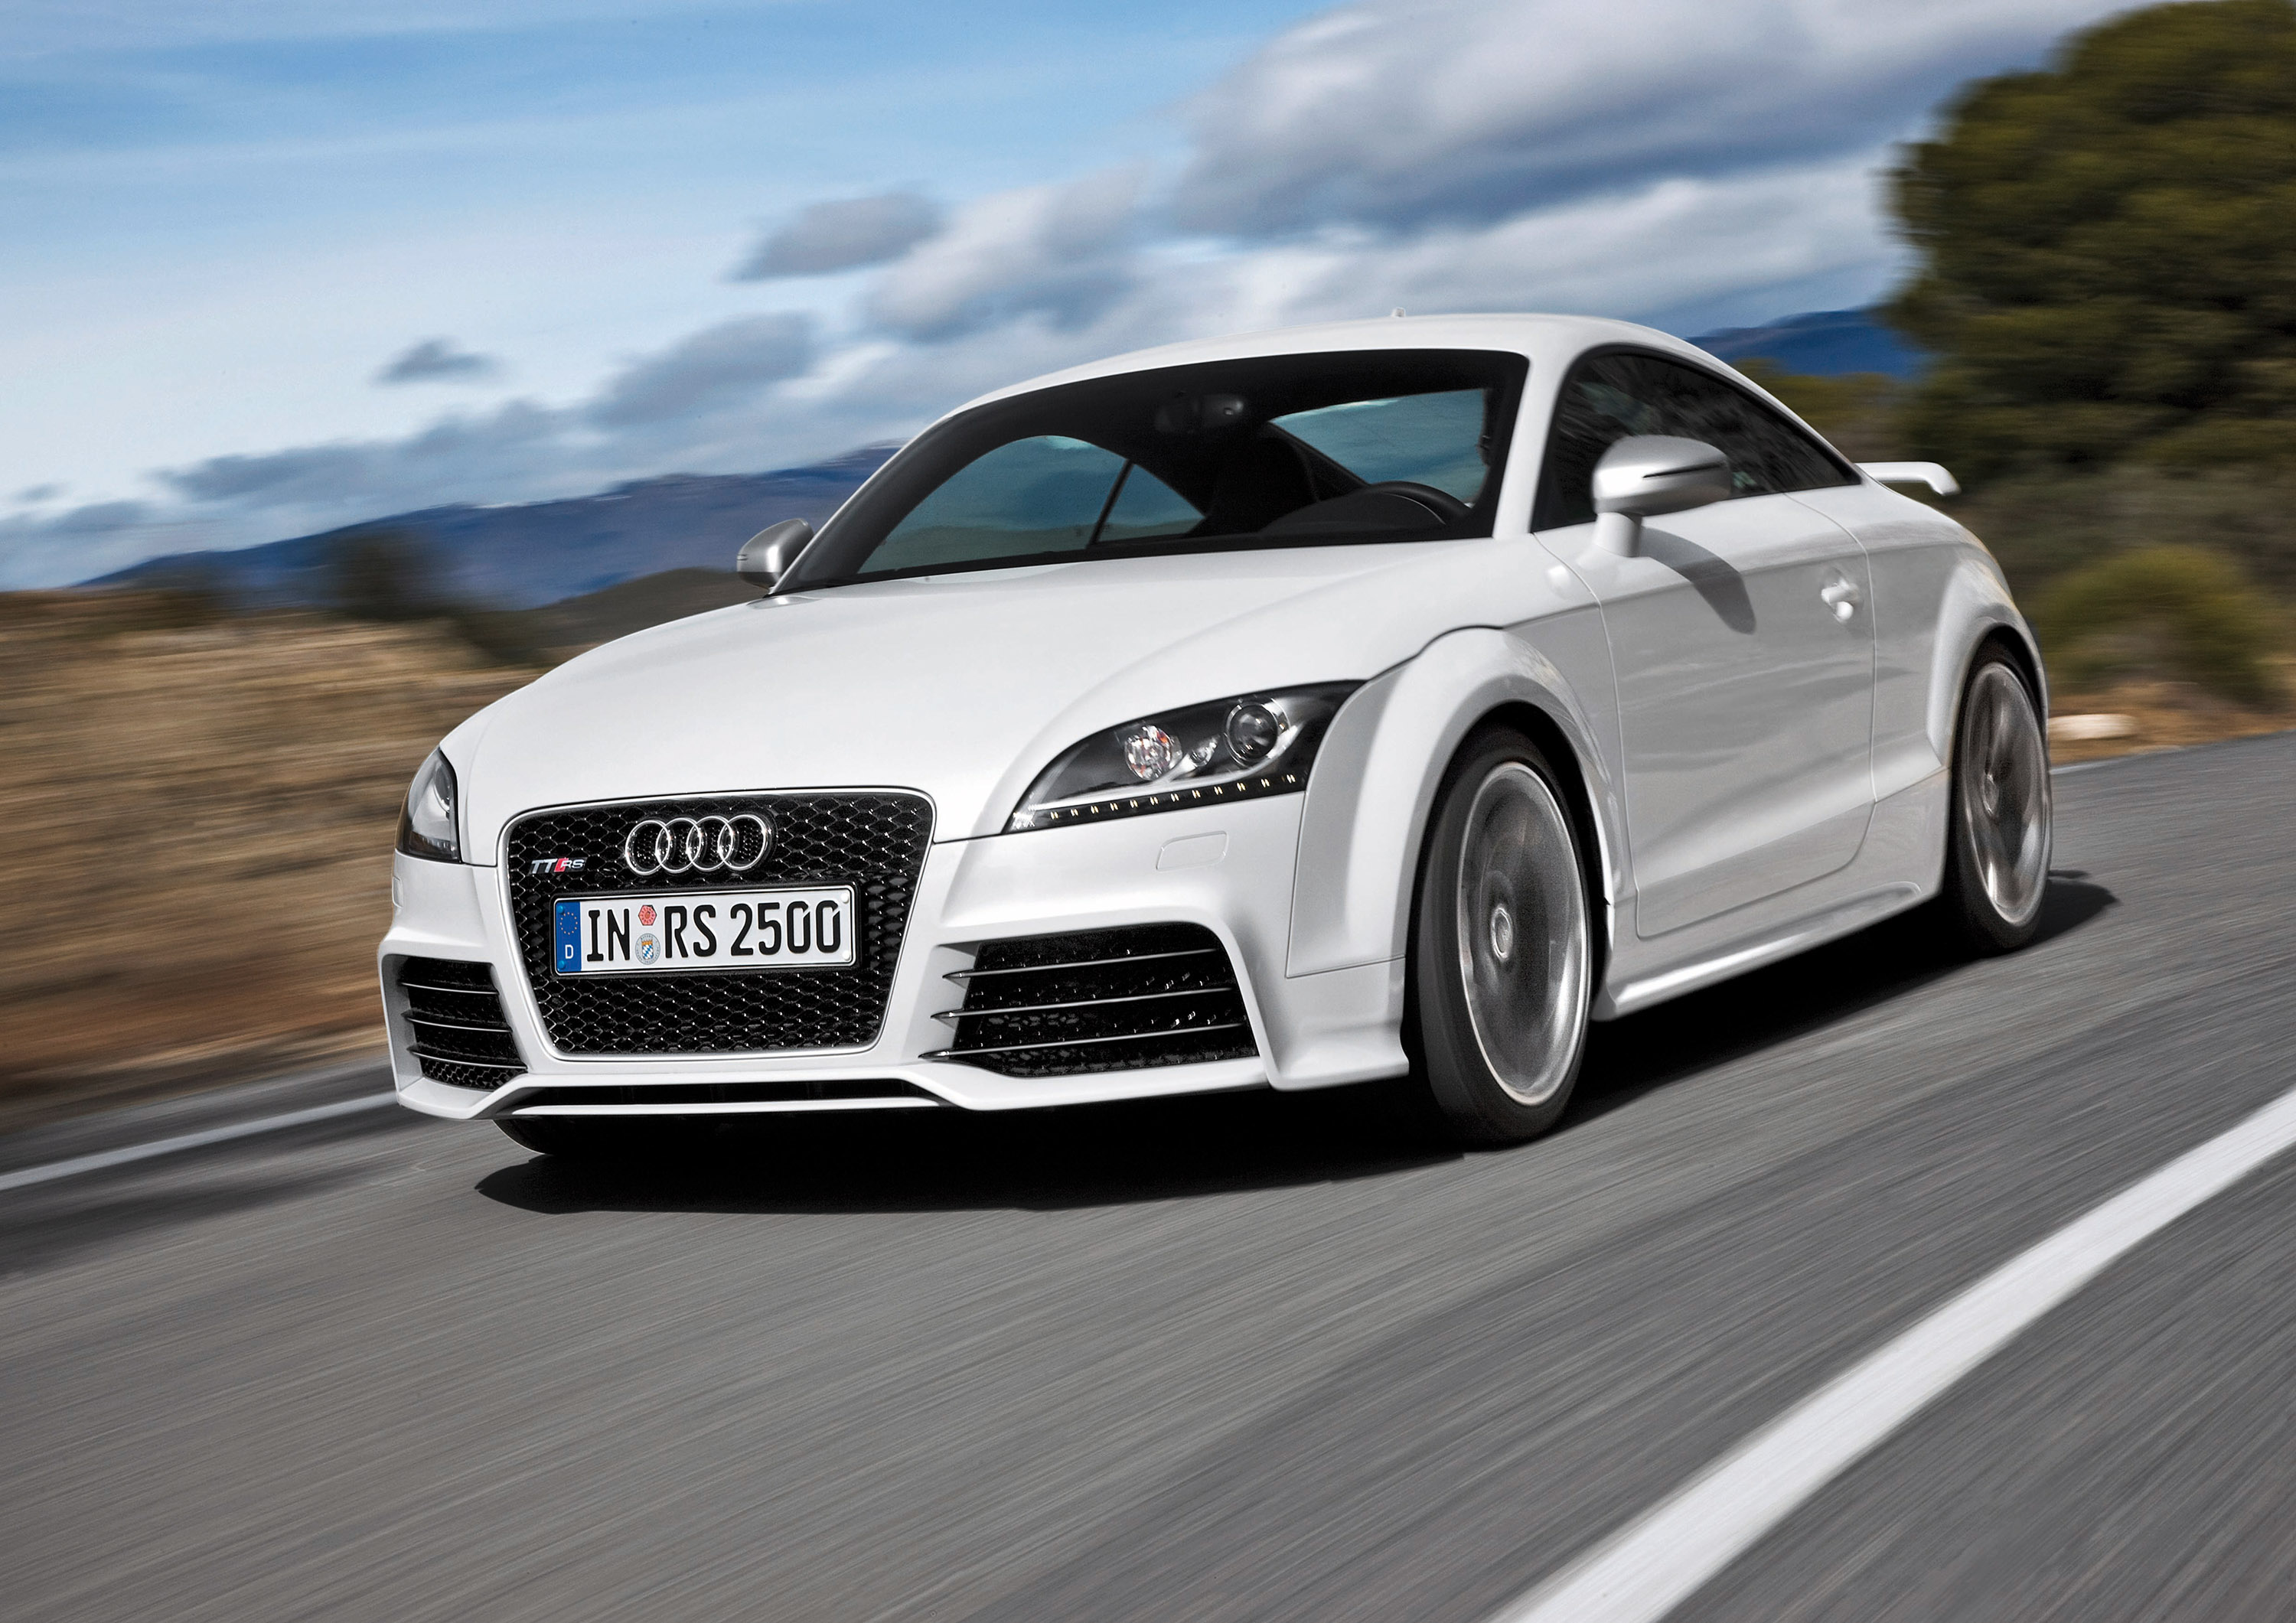 Audi Tt Rs Limited Edition S Tronic